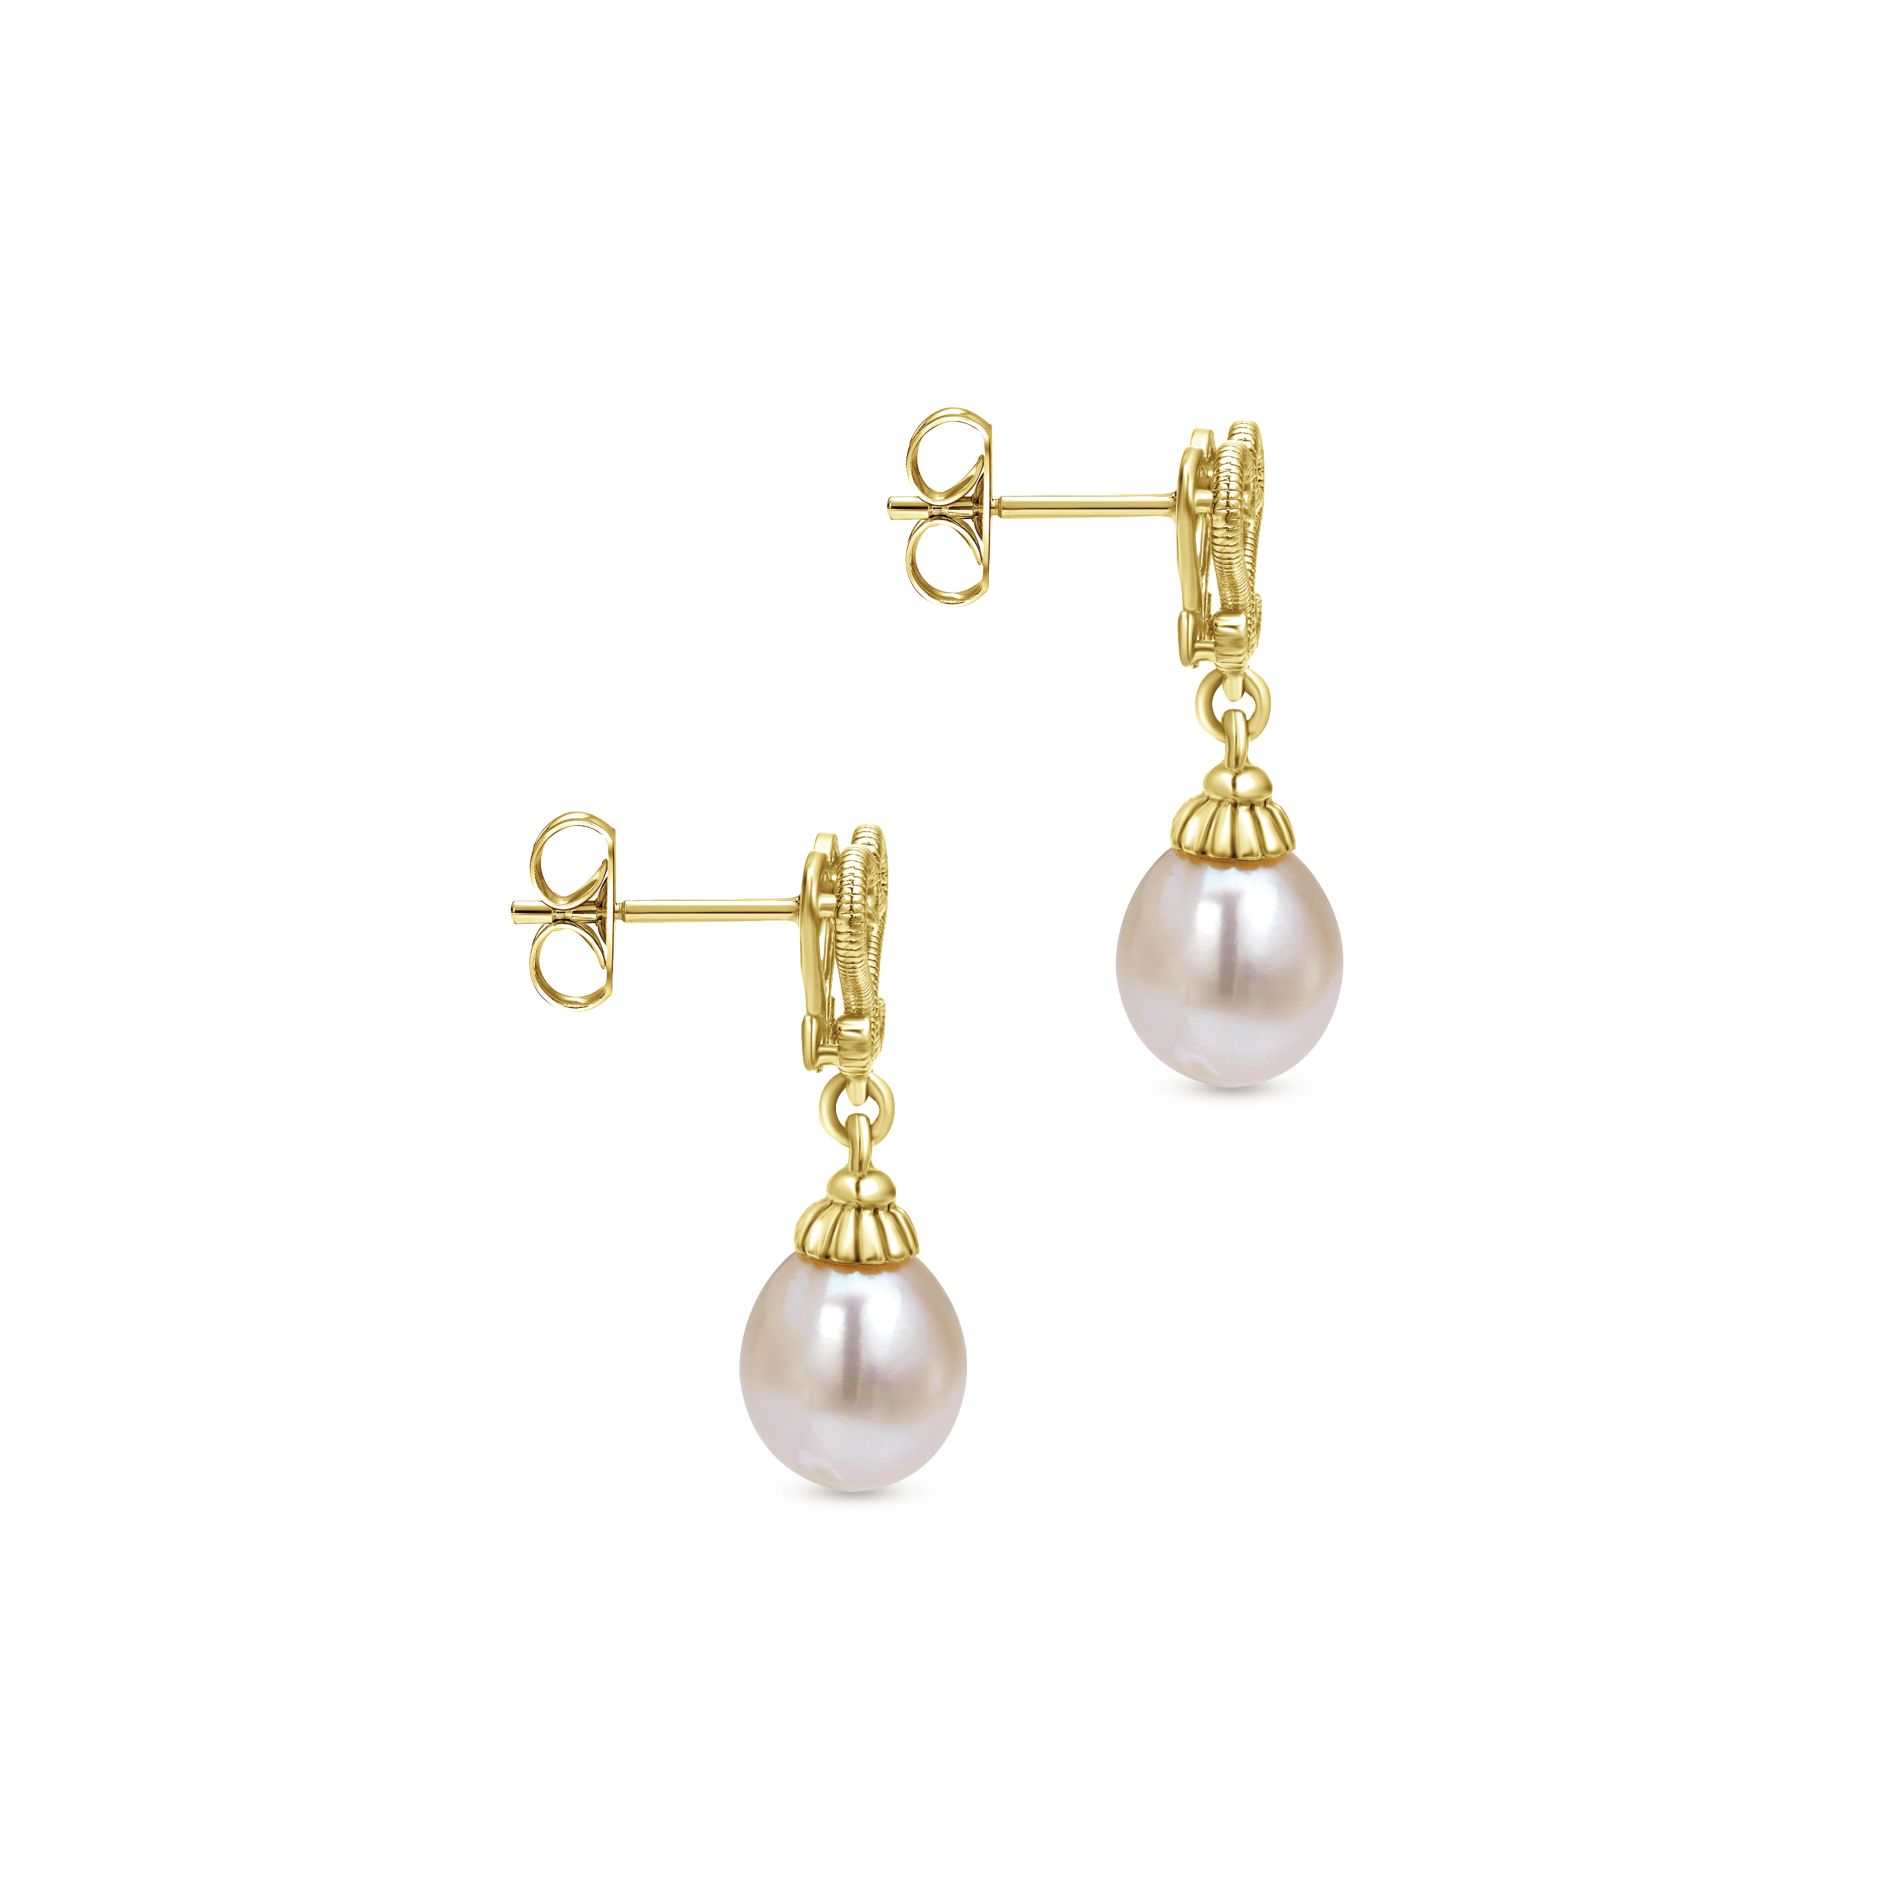 Earrings - YELLOW GOLD DROP CULTURED PEARL EARRINGS - image #3